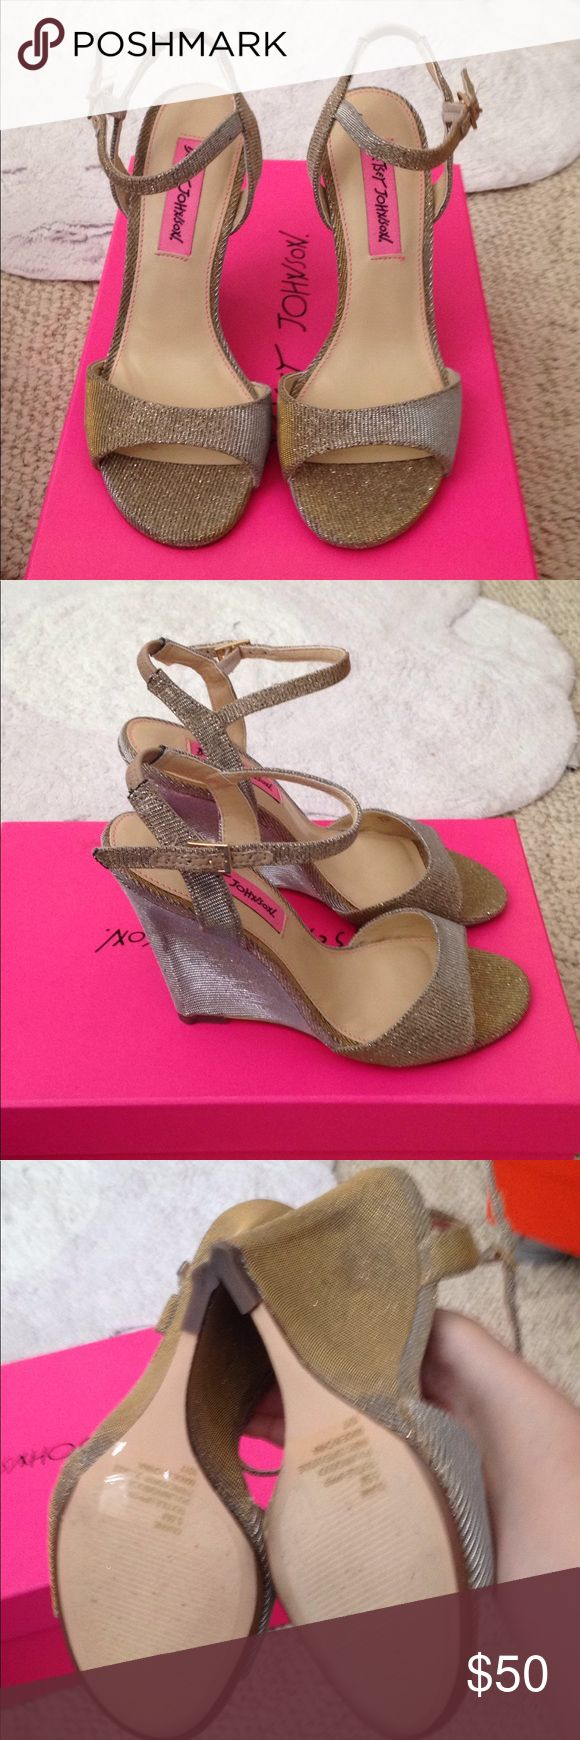 Betsey Johnson gold wedge heels Brand new never worn but I did remove the tag when it was bought. Betsey Johnson Shoes Wedges